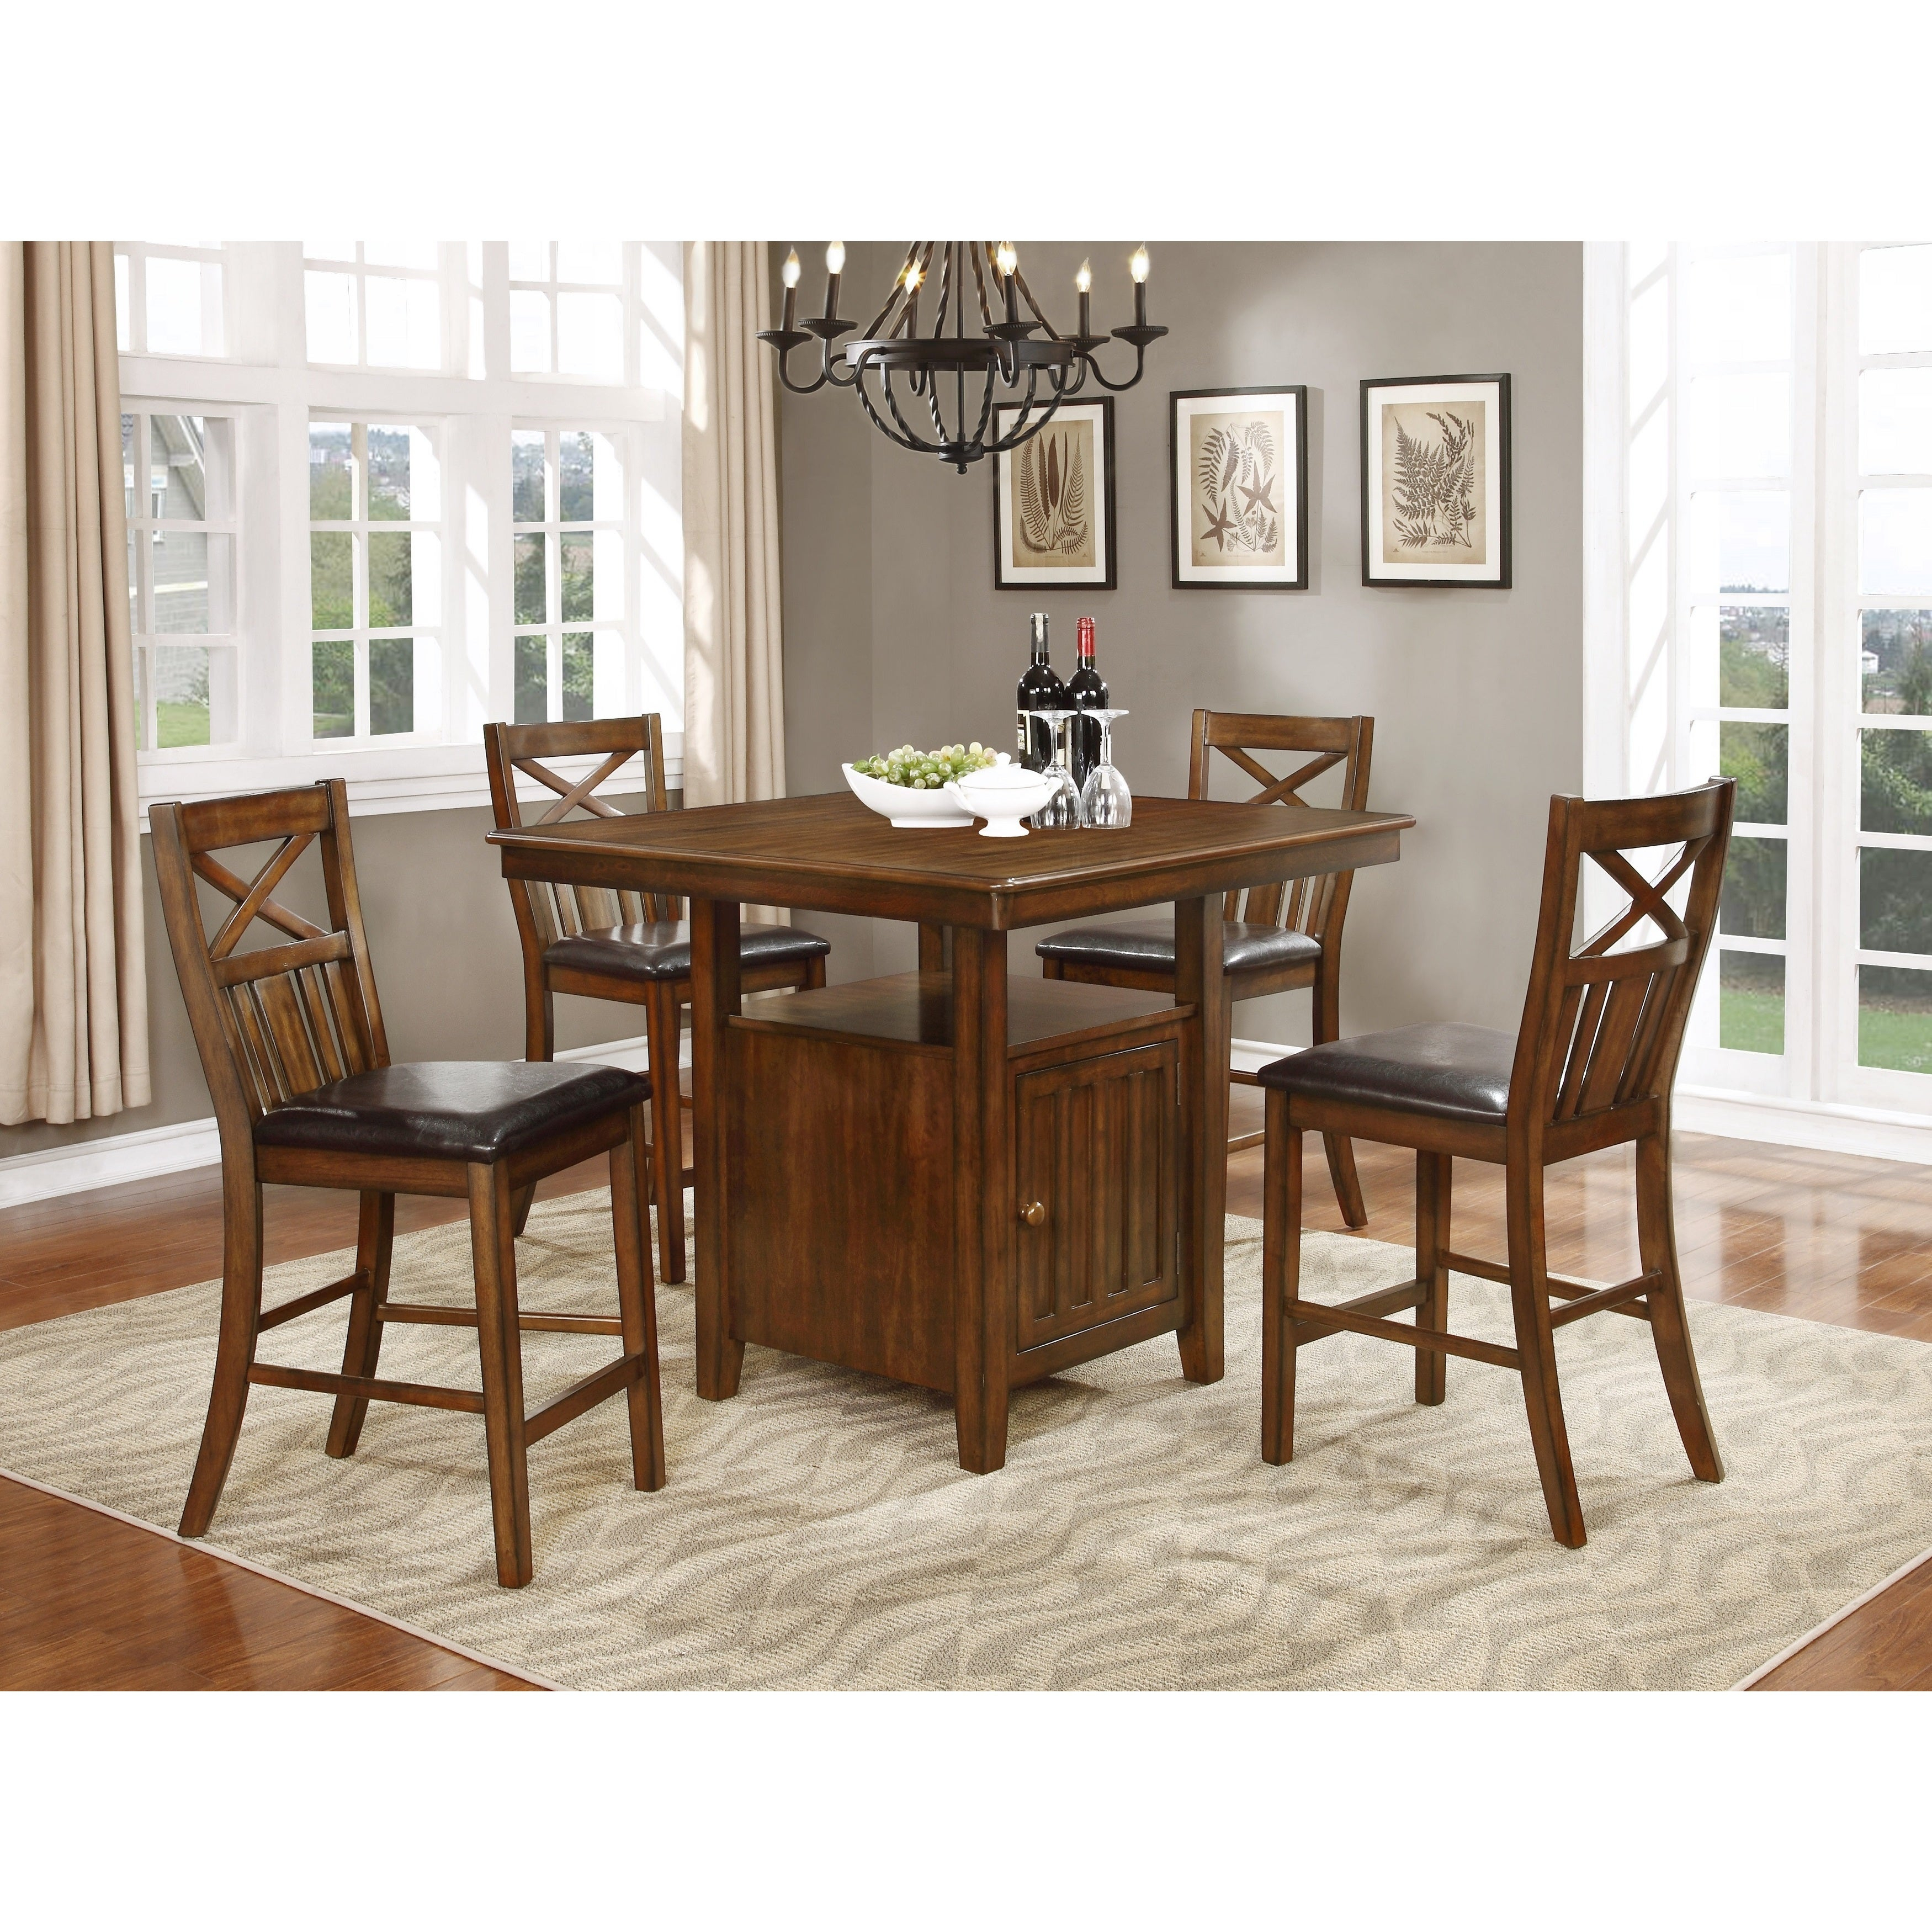 Shop Bryson Cherry Brown Counter Height Dining Table Set W/ Storage Inside Most Recent Bryson 5 Piece Dining Sets (#15 of 20)